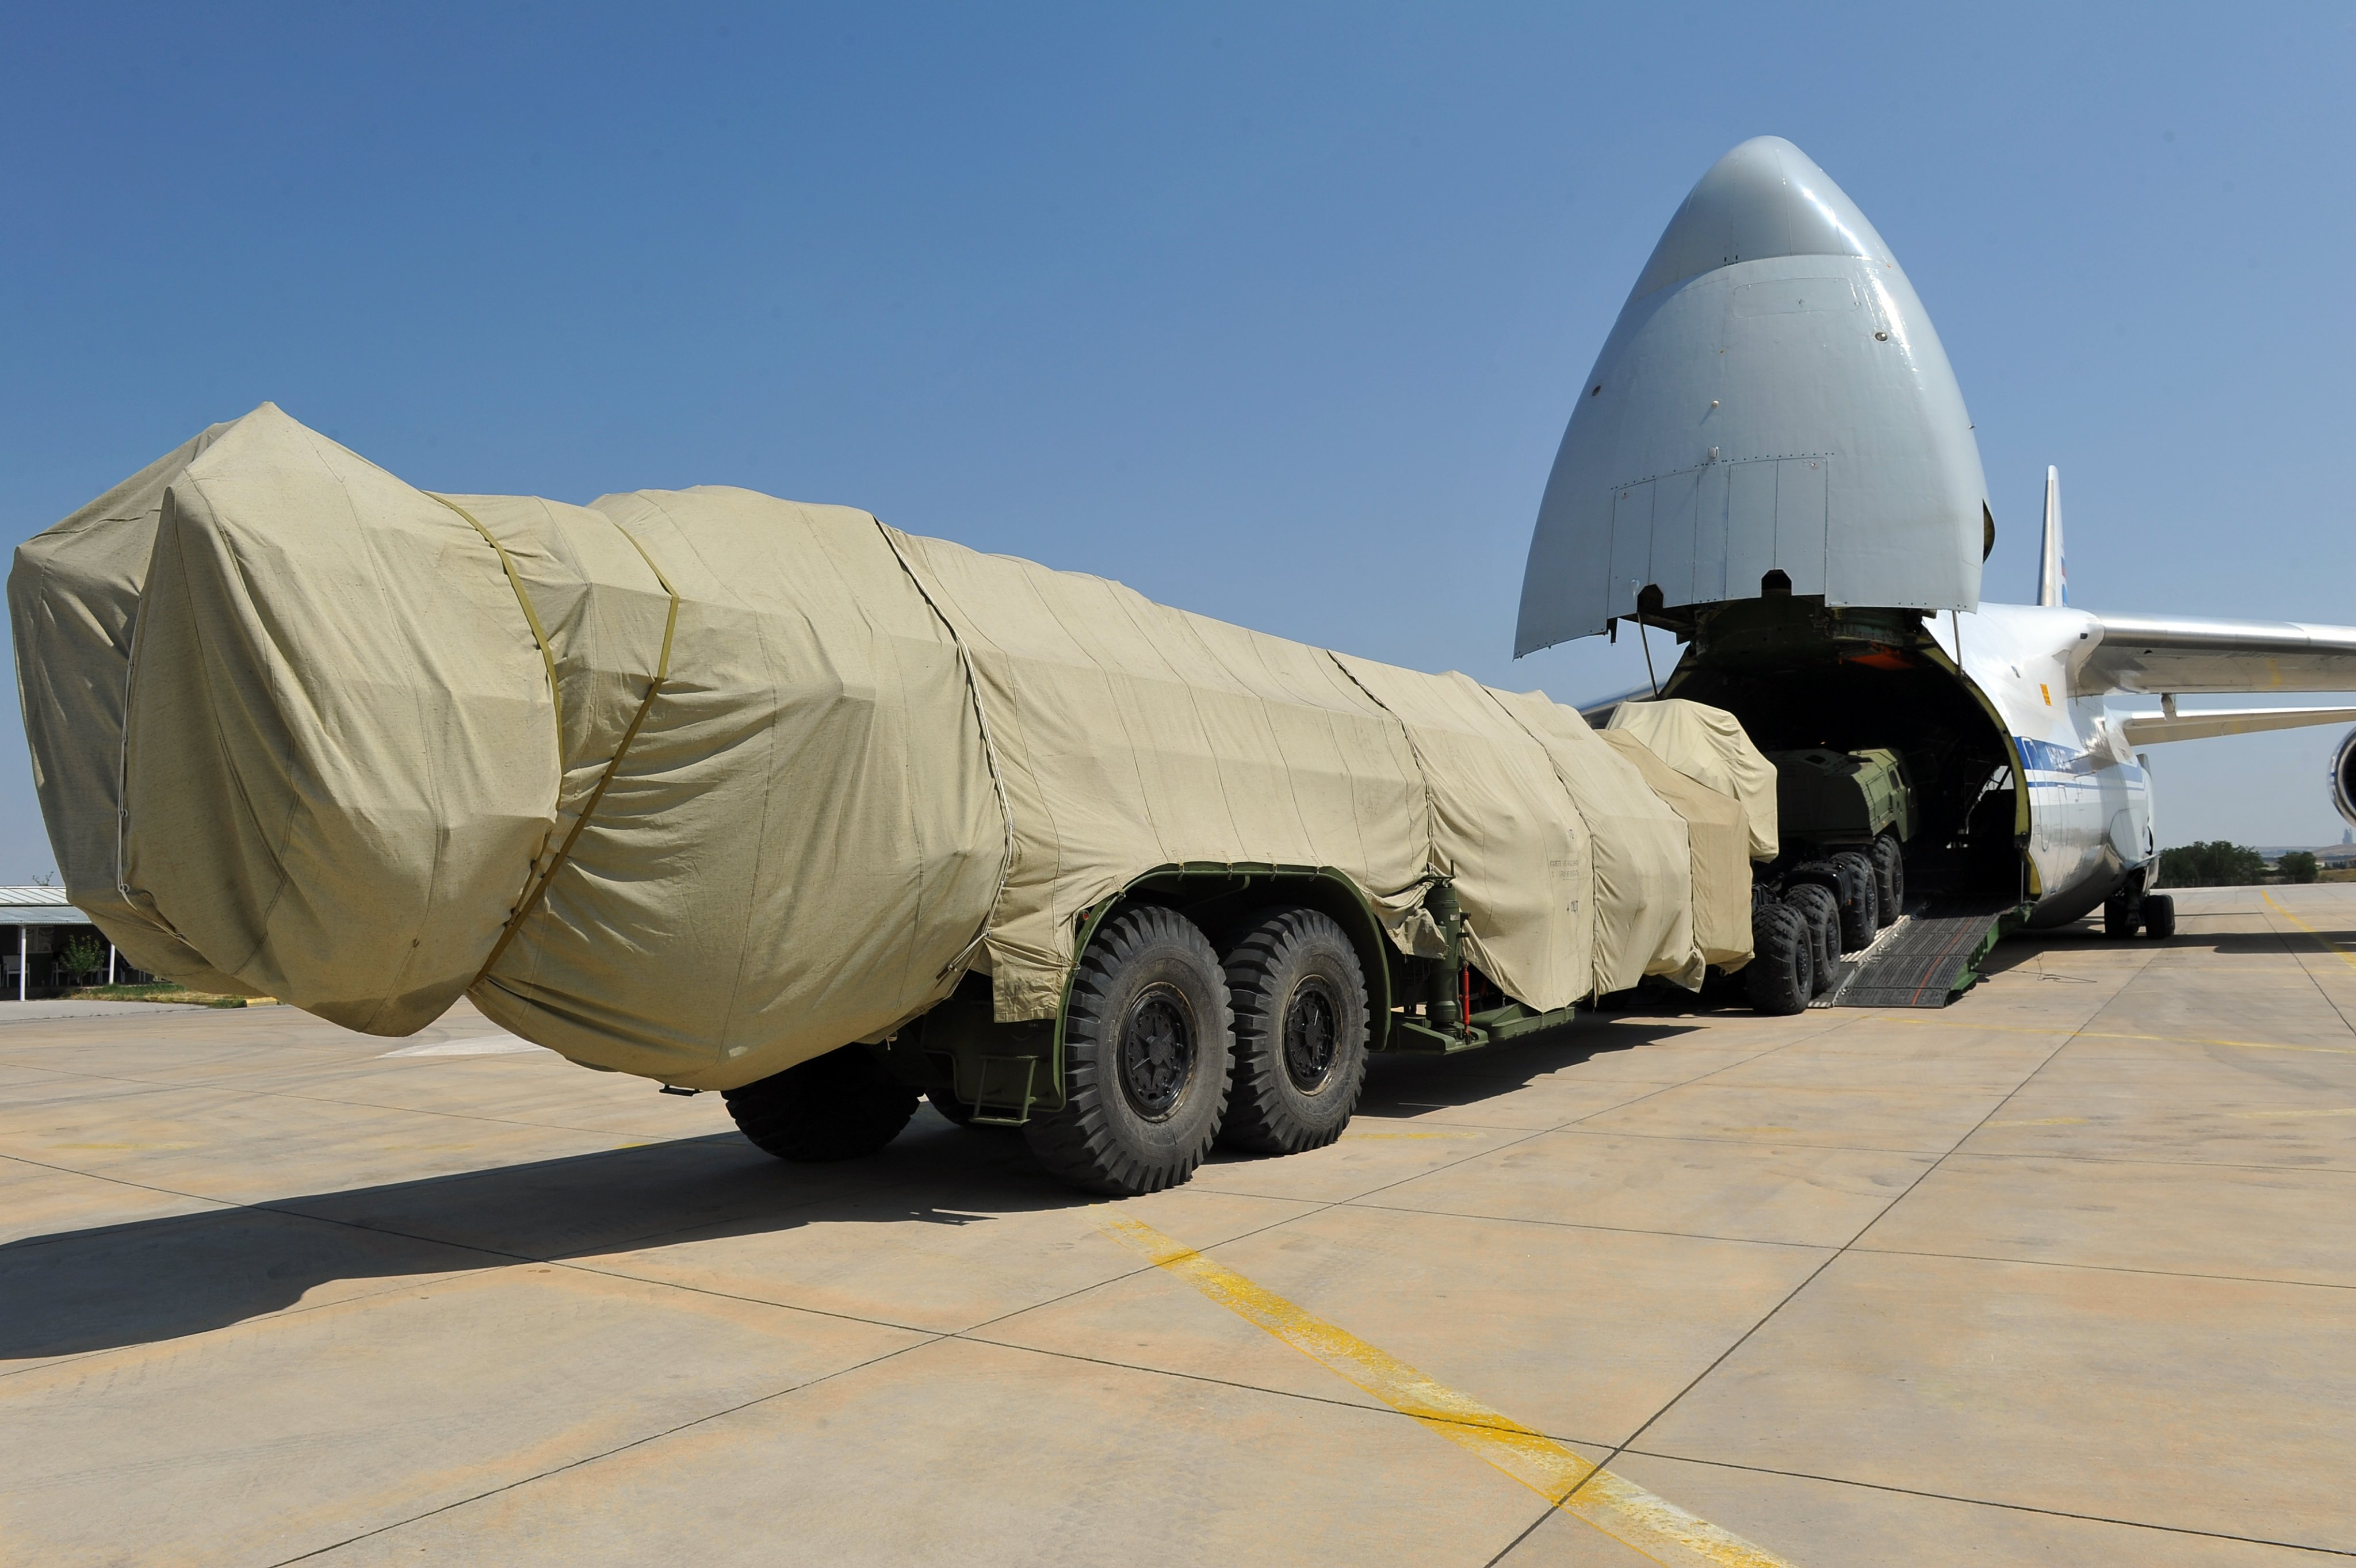 Russia-Turkey S-400 missile deal - Page 4 EEf0S0kWsAAaEFS?format=jpg&name=4096x4096